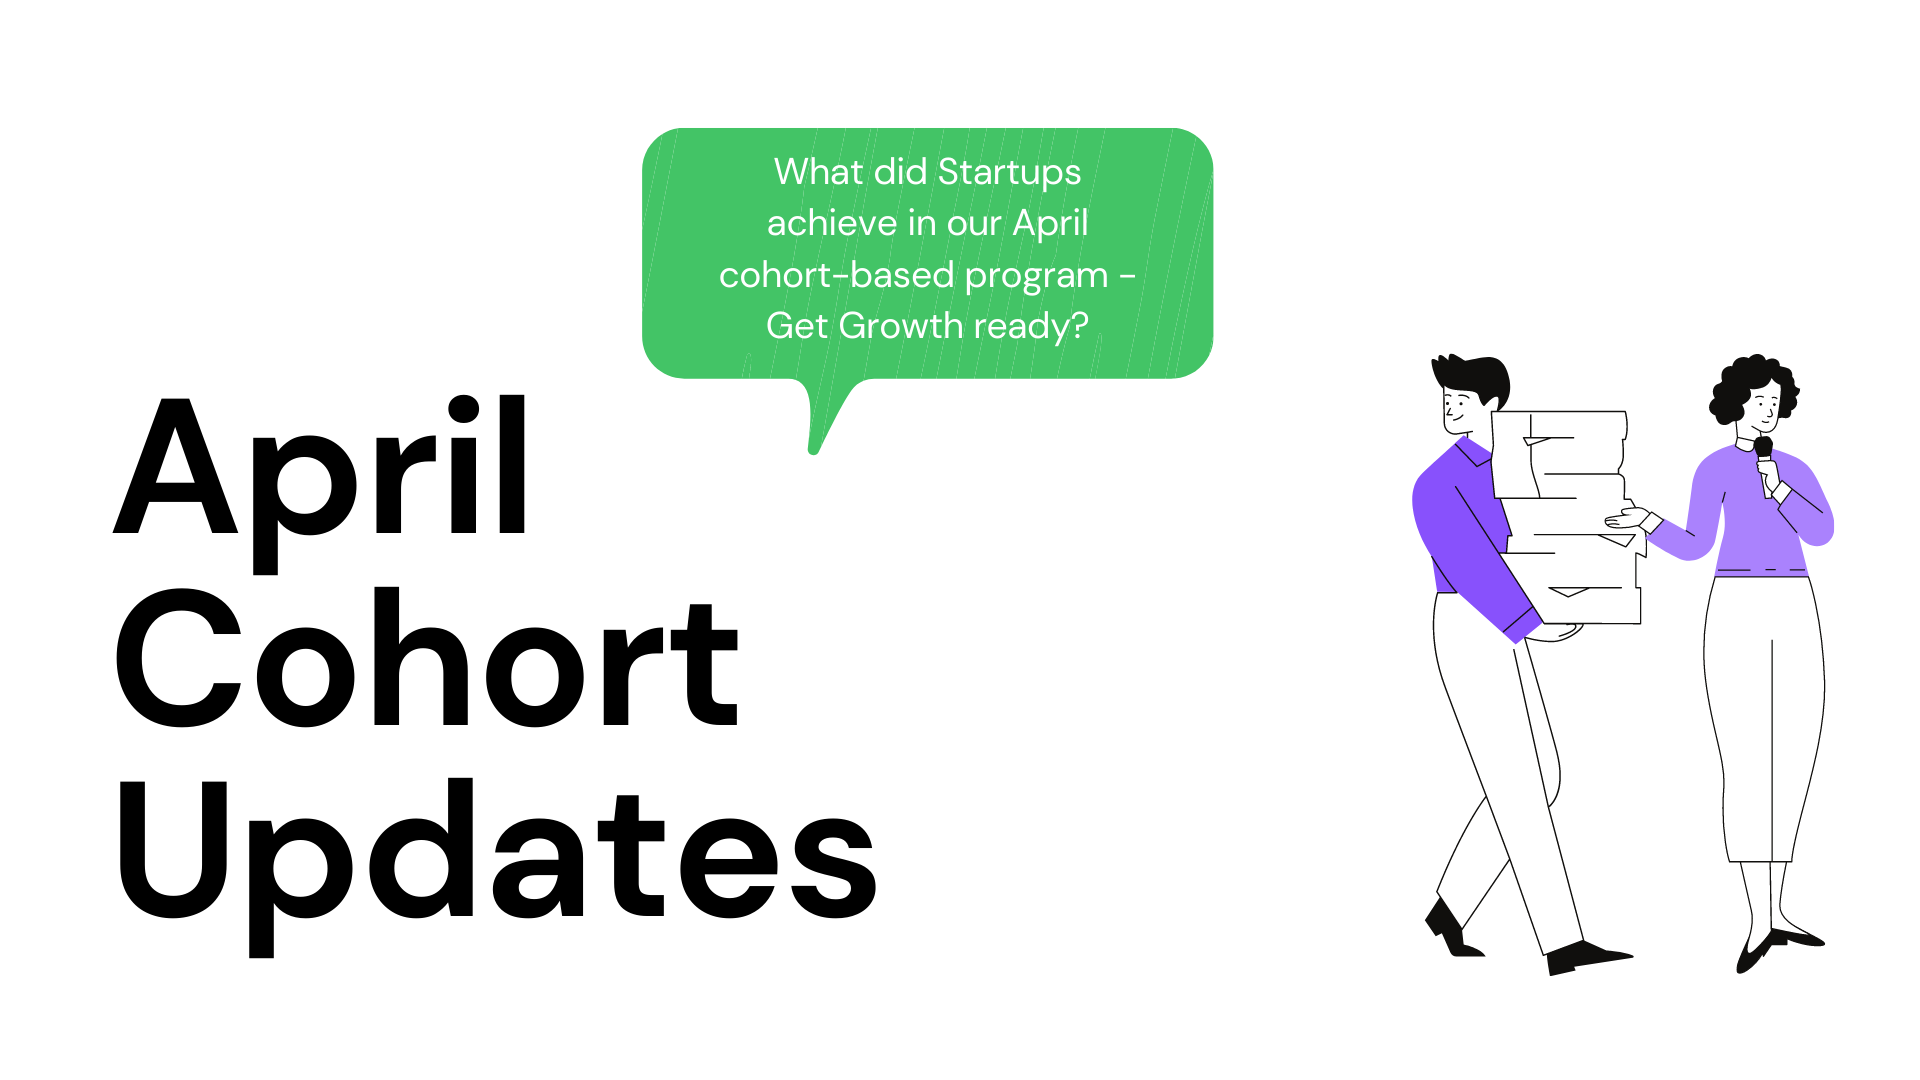 What did Startups achieve in our April cohort-based program - Get Growth ready?